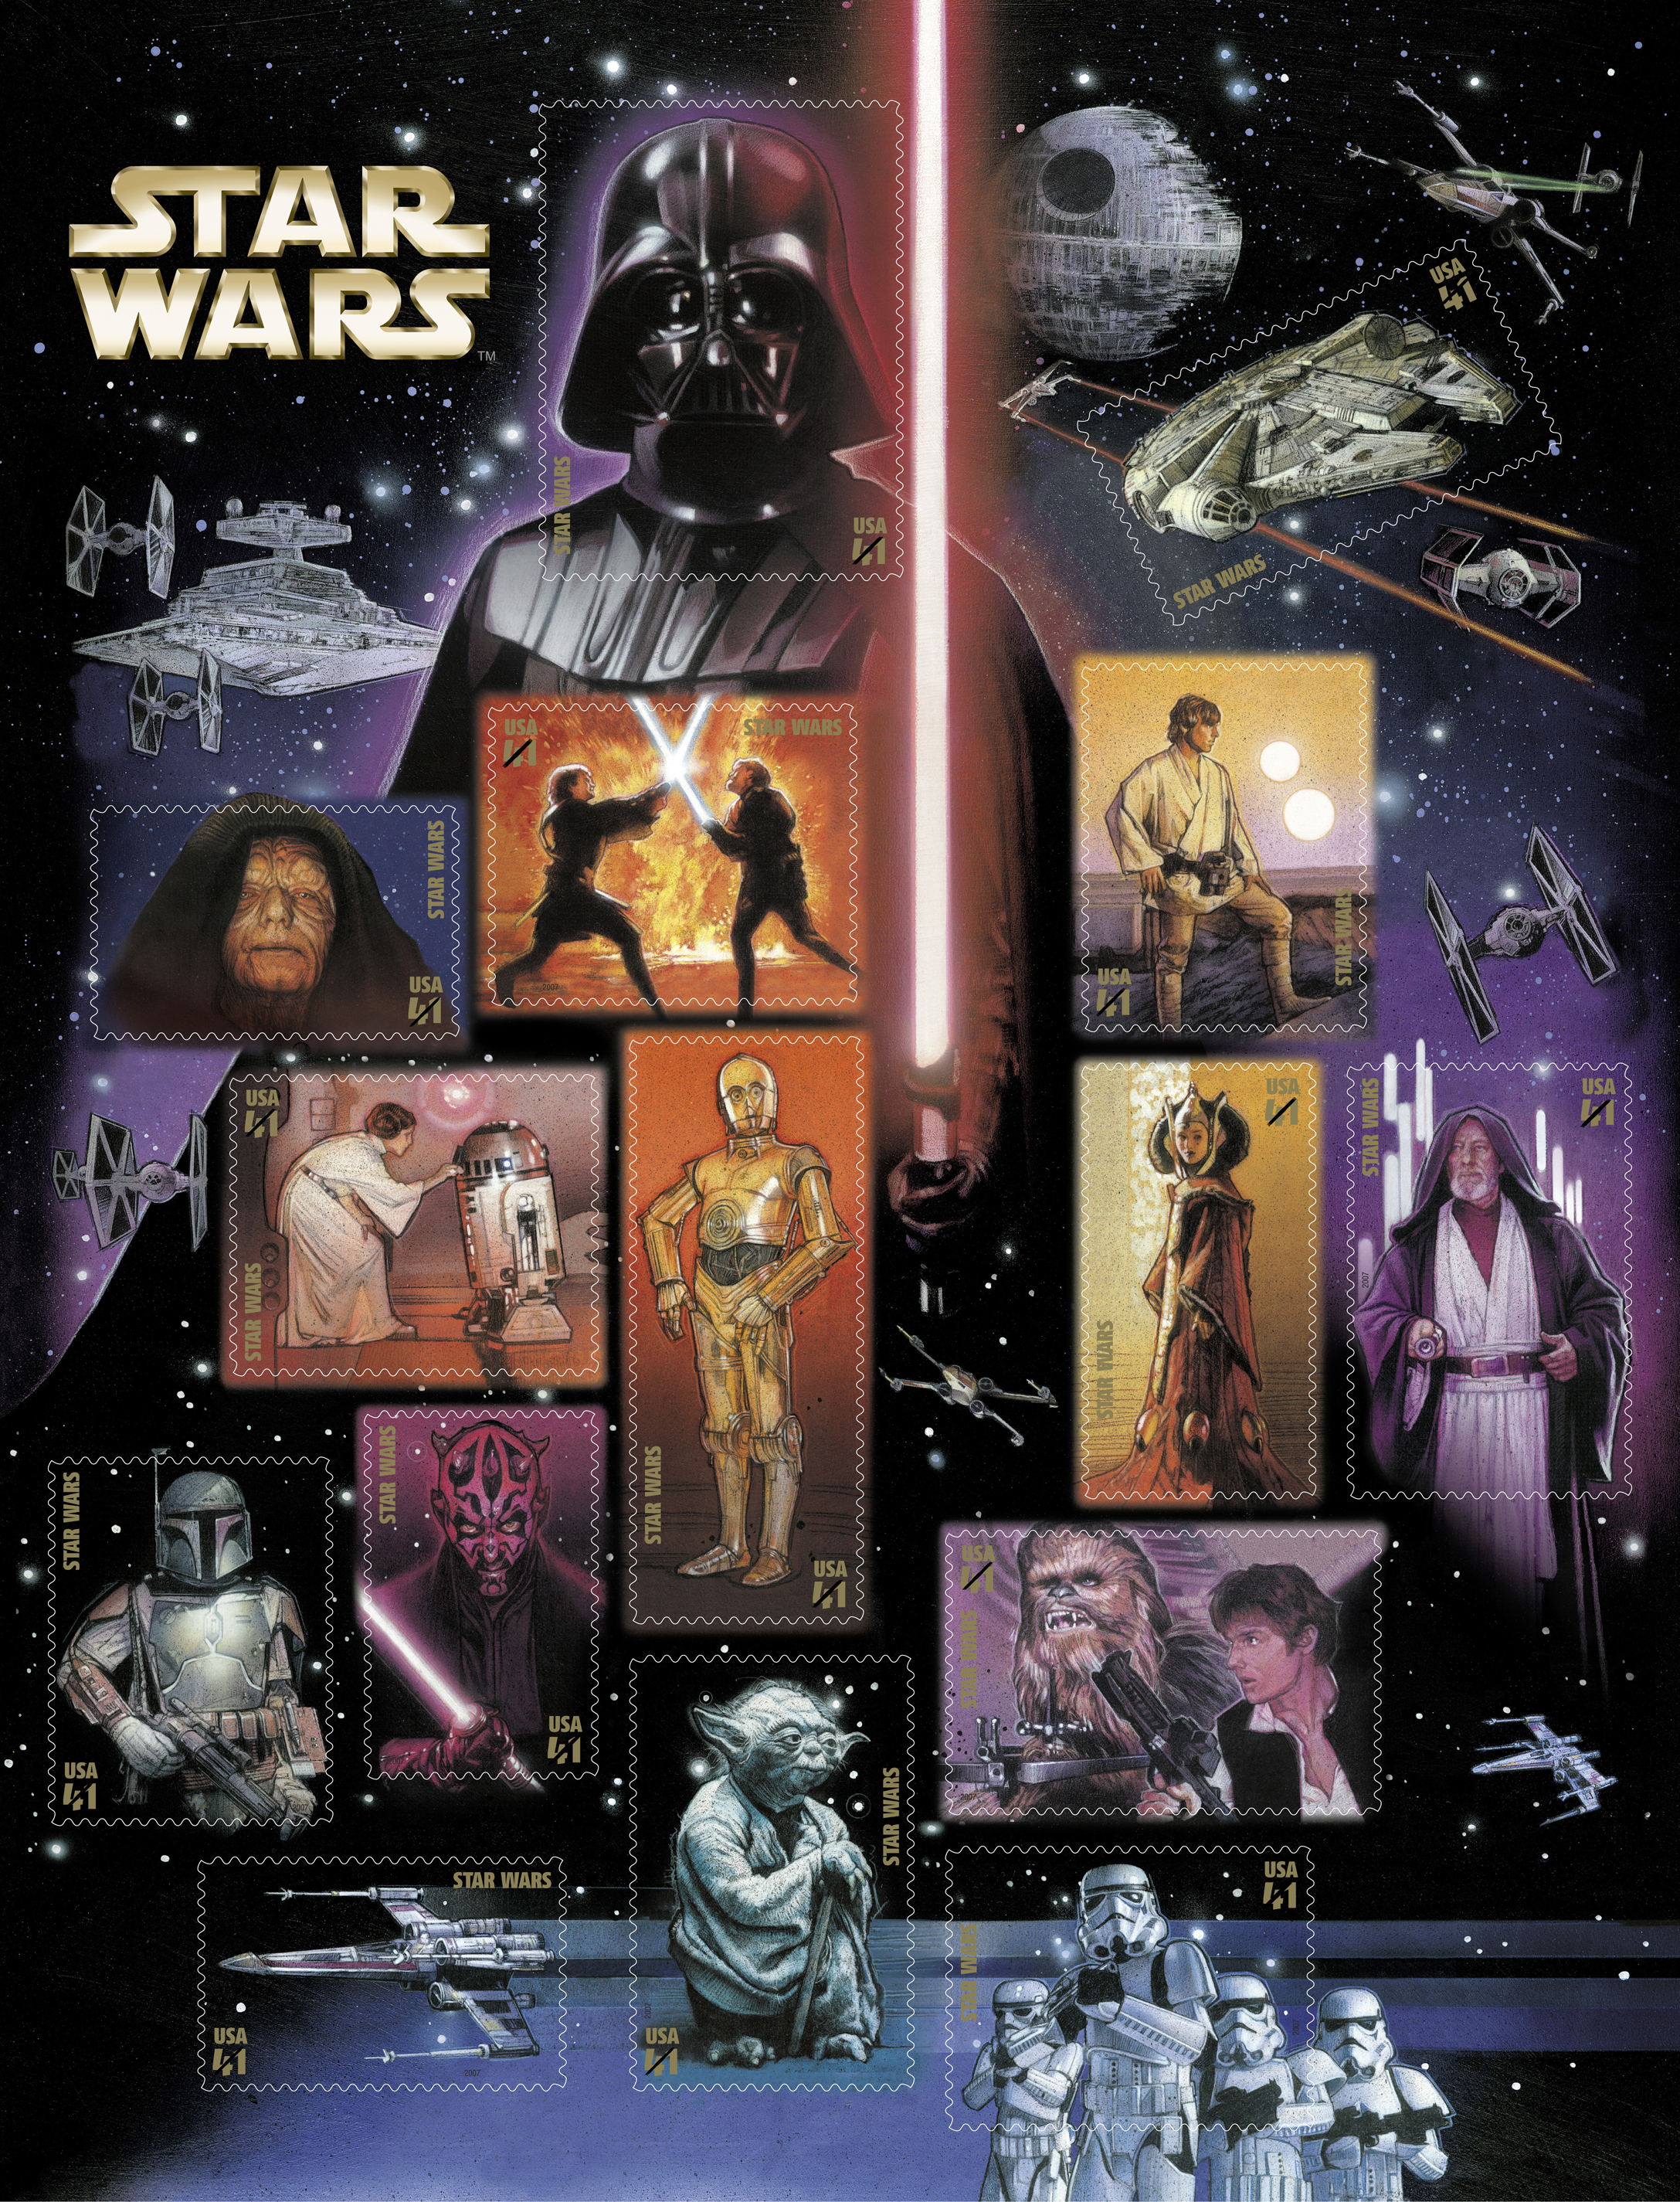 Star Wars Australian Postage Stamp Sheet Attack of the Clones